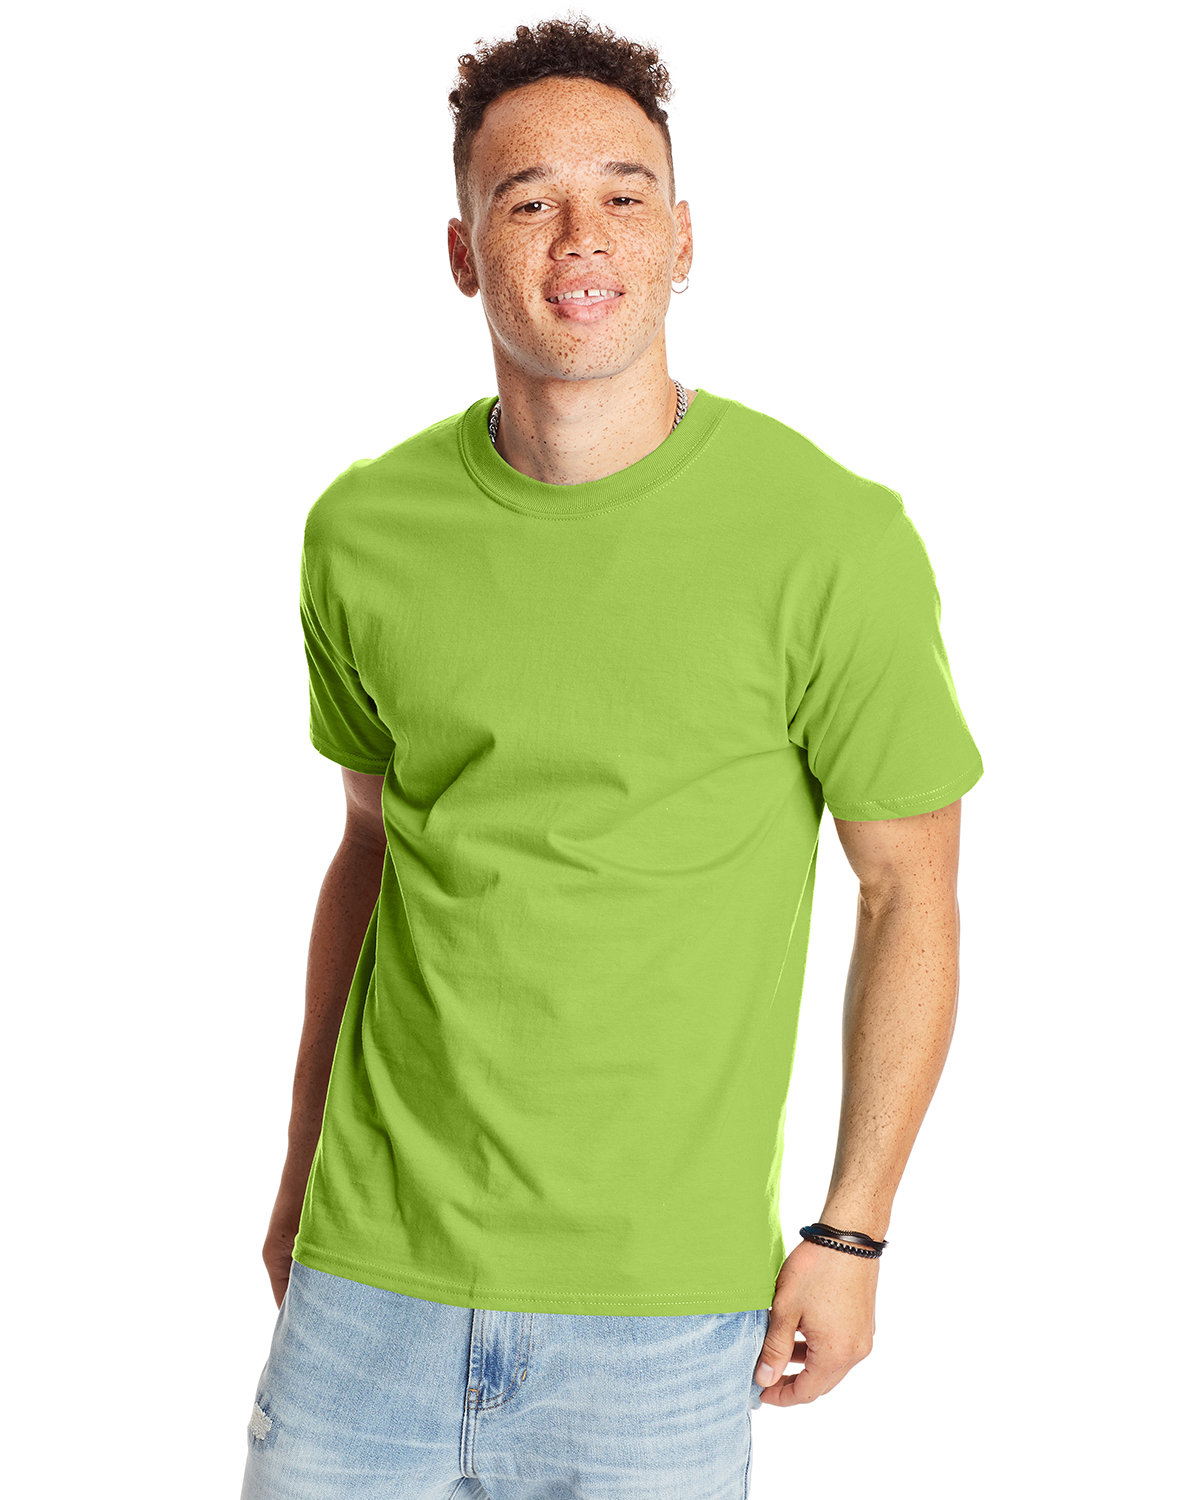 Hanes Unisex Beefy-T® T-Shirt LIME